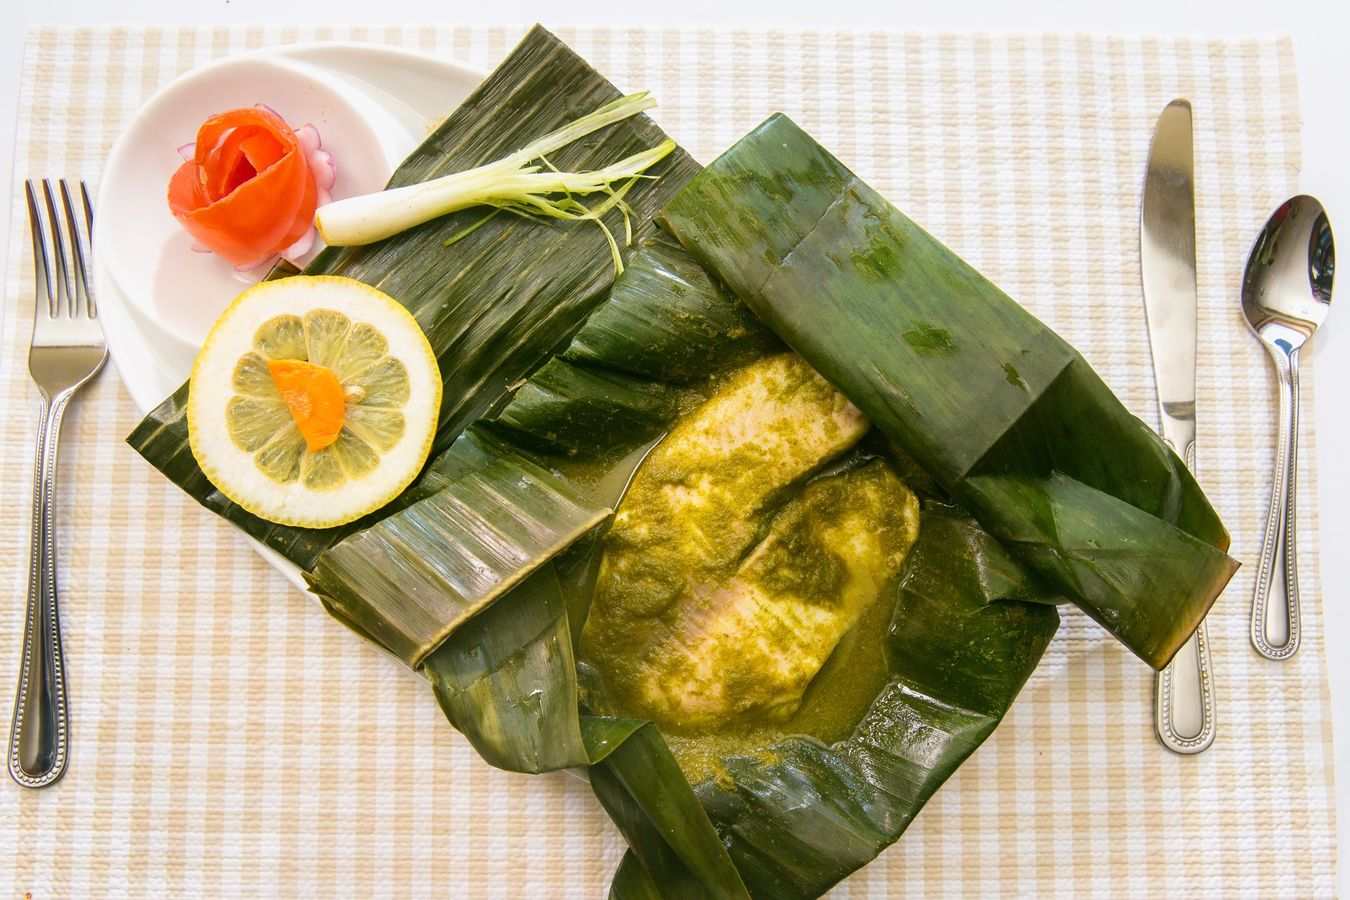 Food Porn Awards Patrani machchi (steamed fish) from the popular Parsi cuisine , Patrani machchi is cooked by marinating the fish fillets in the green sauce made of mint, coconut and other spices . The marinated fish is wrapped with a banana leaf and steam cooked .. Parsi Foodie Fish Food Porn